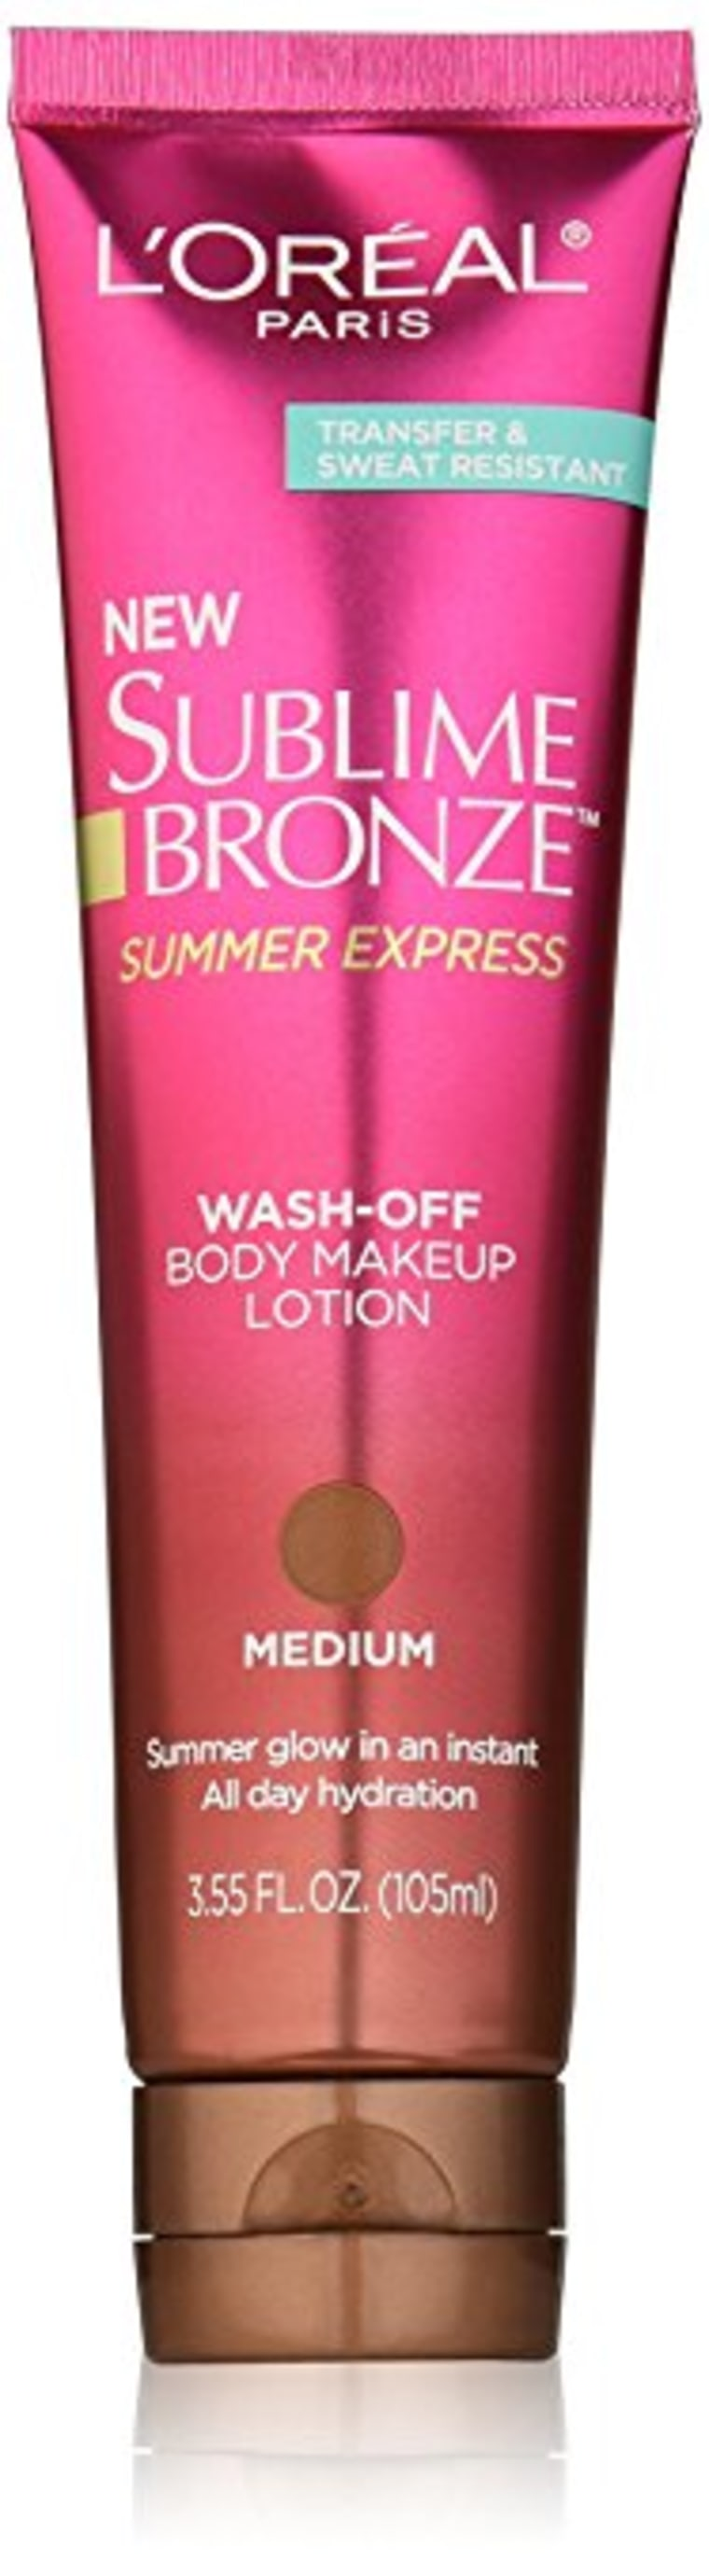 Sublime Bronze Summer Express Body Lotion